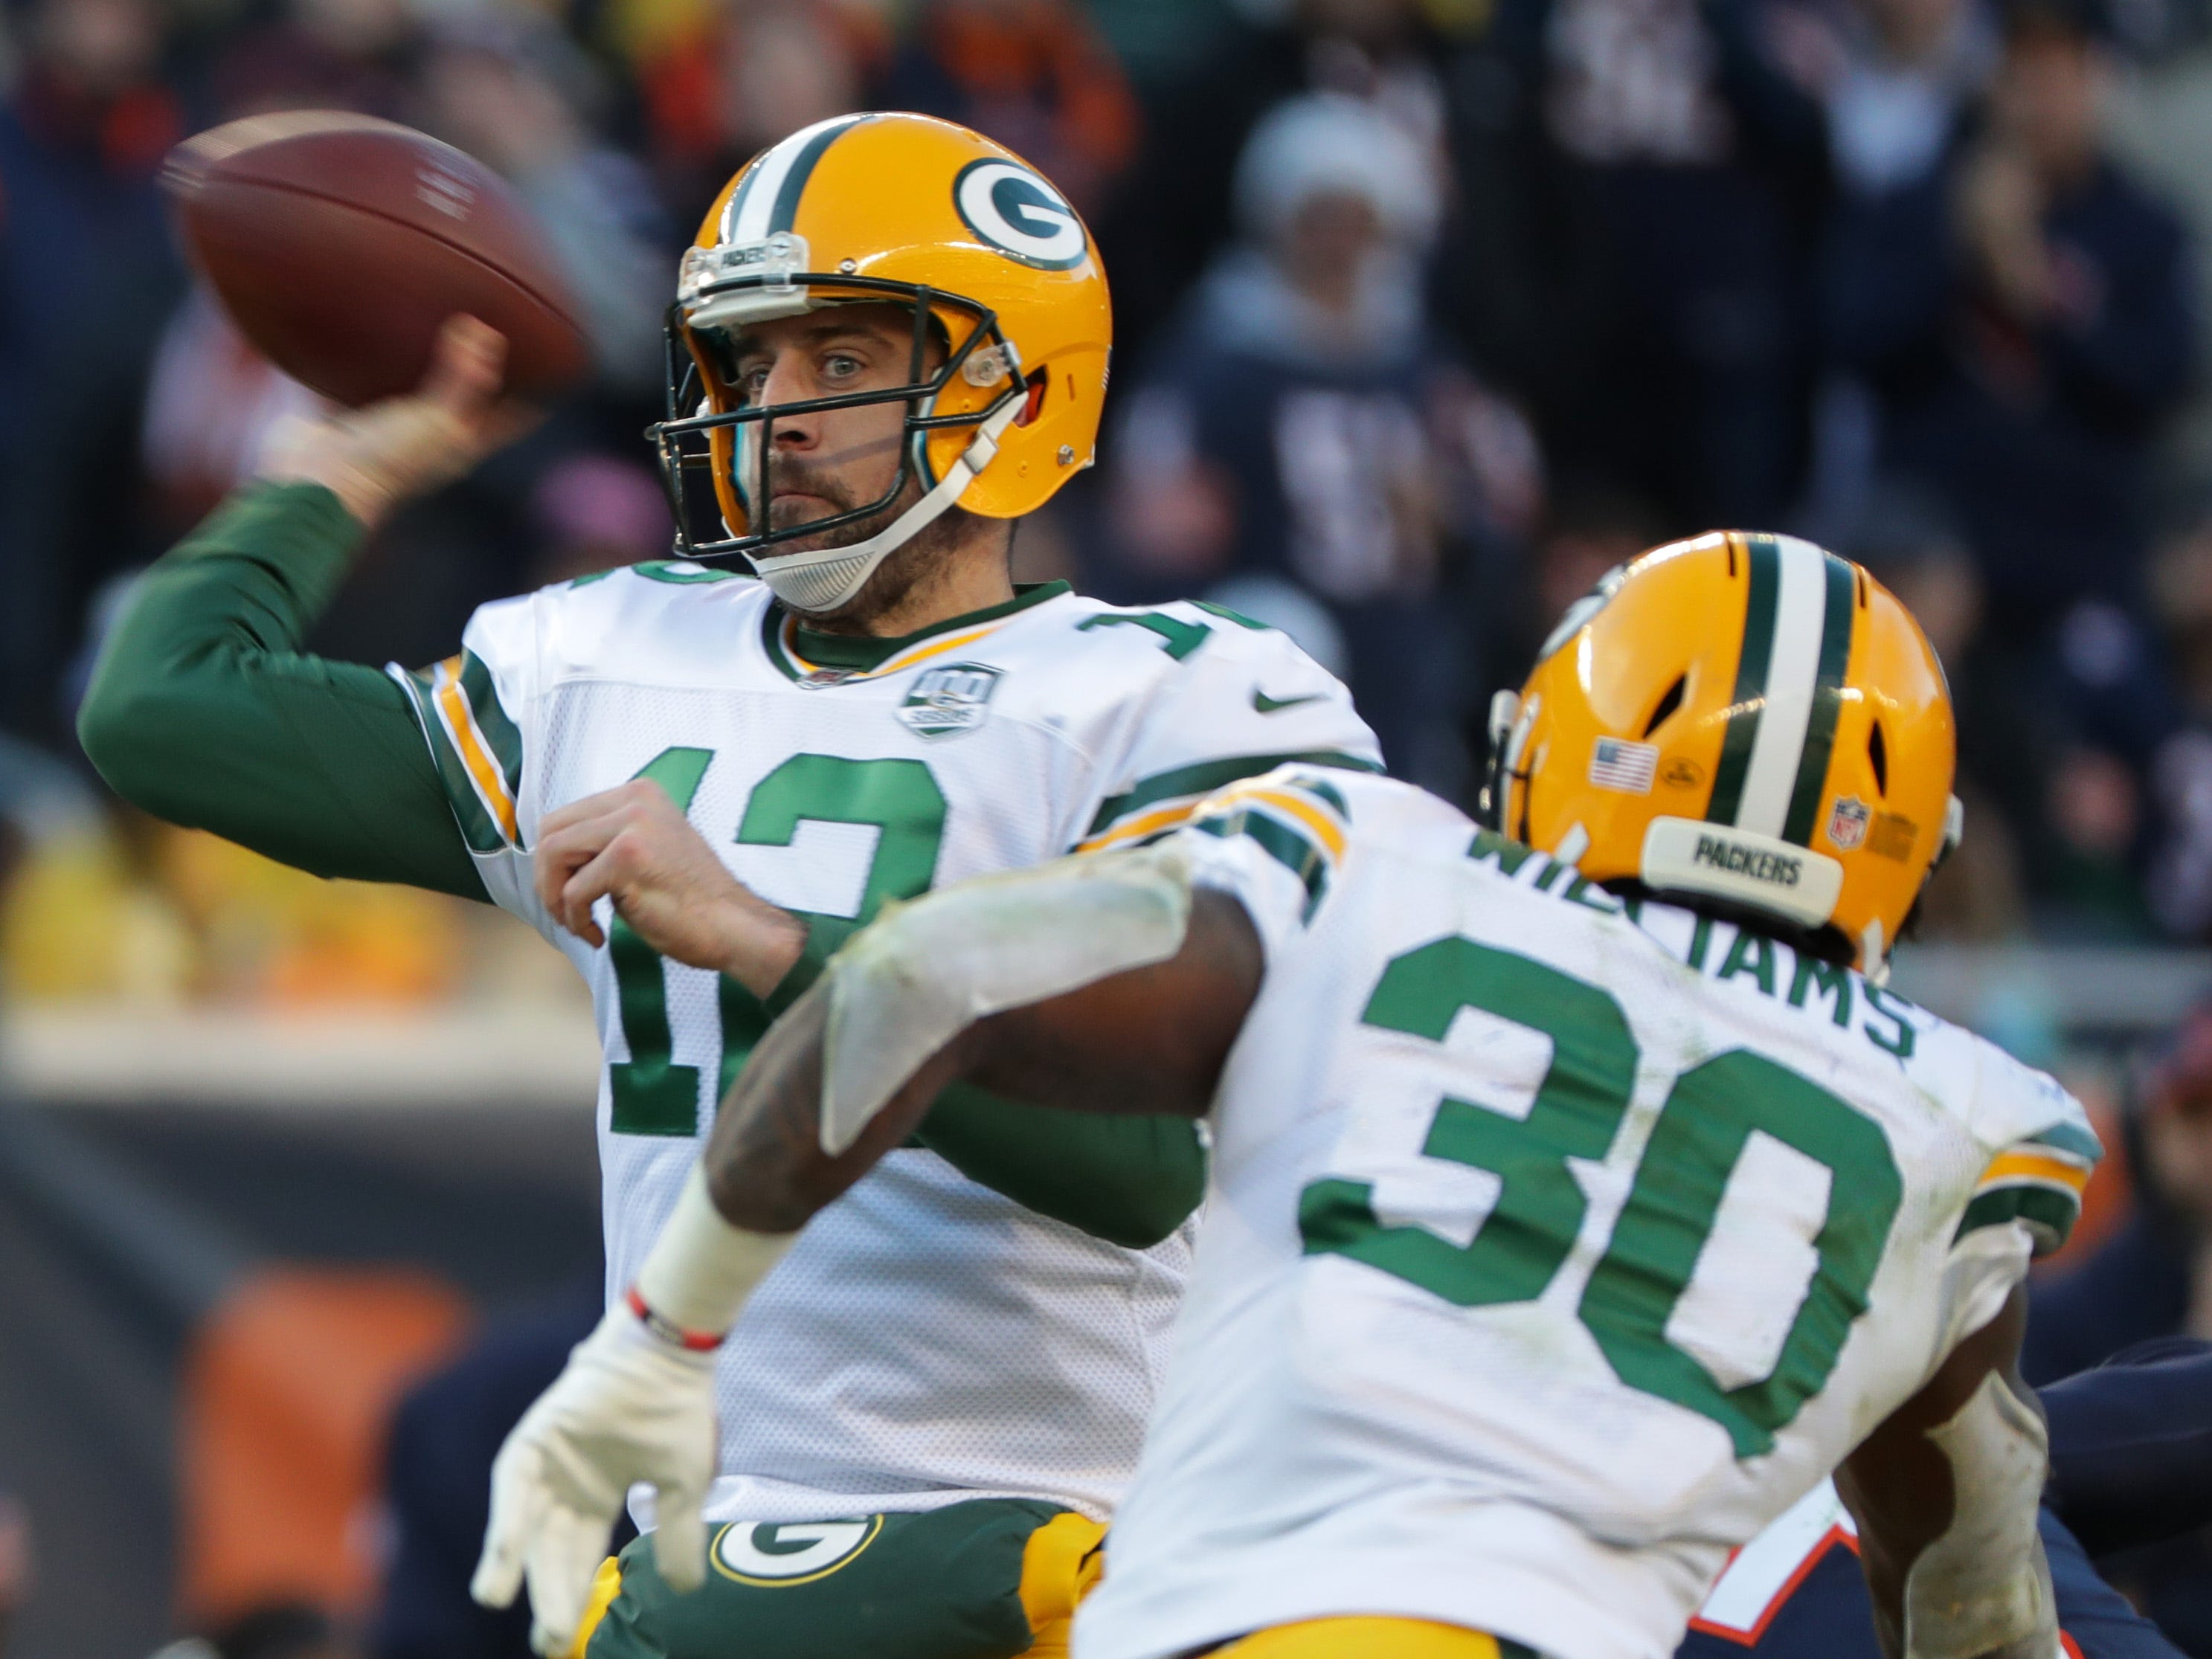 Green Bay Packers quarterback Aaron Rodgers (12) manages t get off a pass during the fourth quarter of their game against the Chicago Bears Sunday, December 25, 2018 at Soldier Field in Chicago, Ill. The Chicago Bears beat the Green Bay Packers 24-17.  MARK HOFFMAN/MILWAUKEE JOURNAL SENTINEL